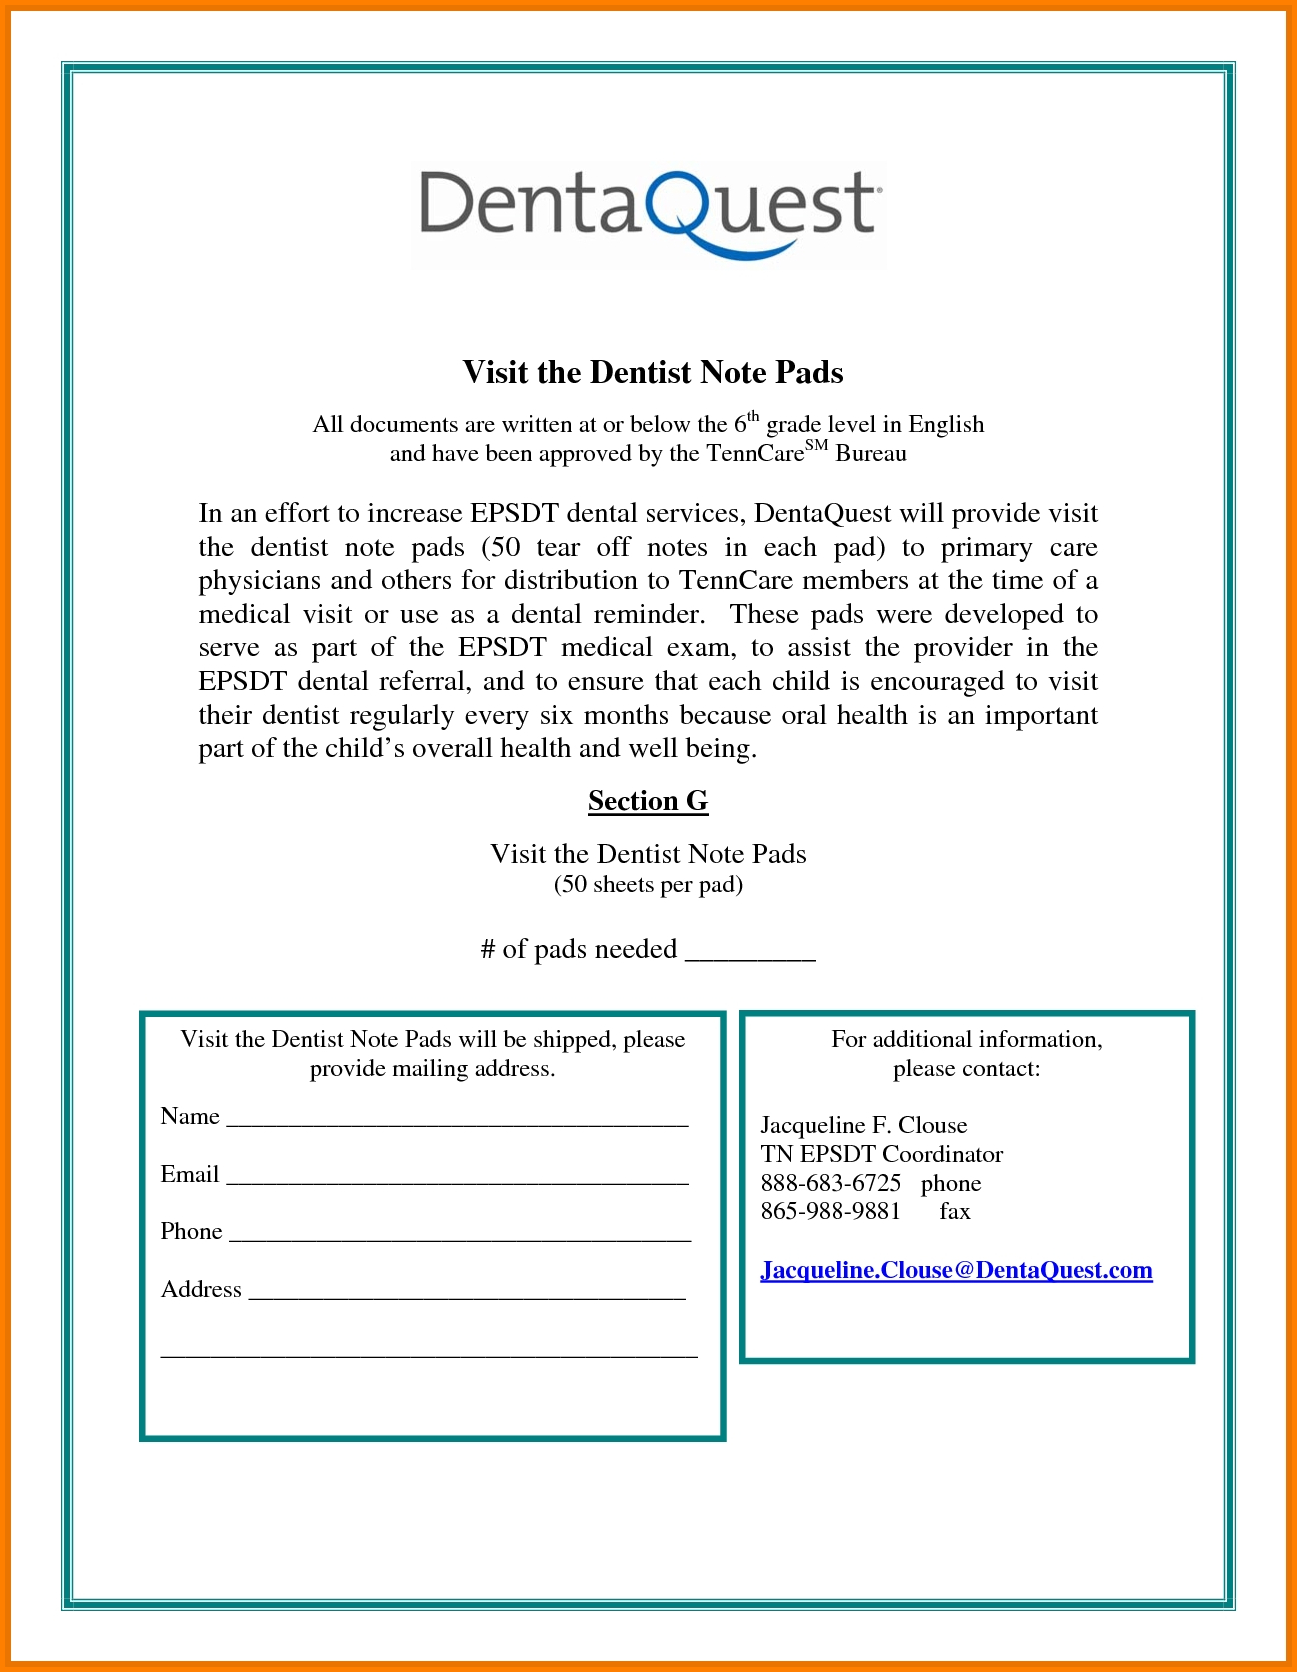 043 Dentist Note Templates Franklinfire Co For Dental Notes Pertaining To Dental Notes Templates